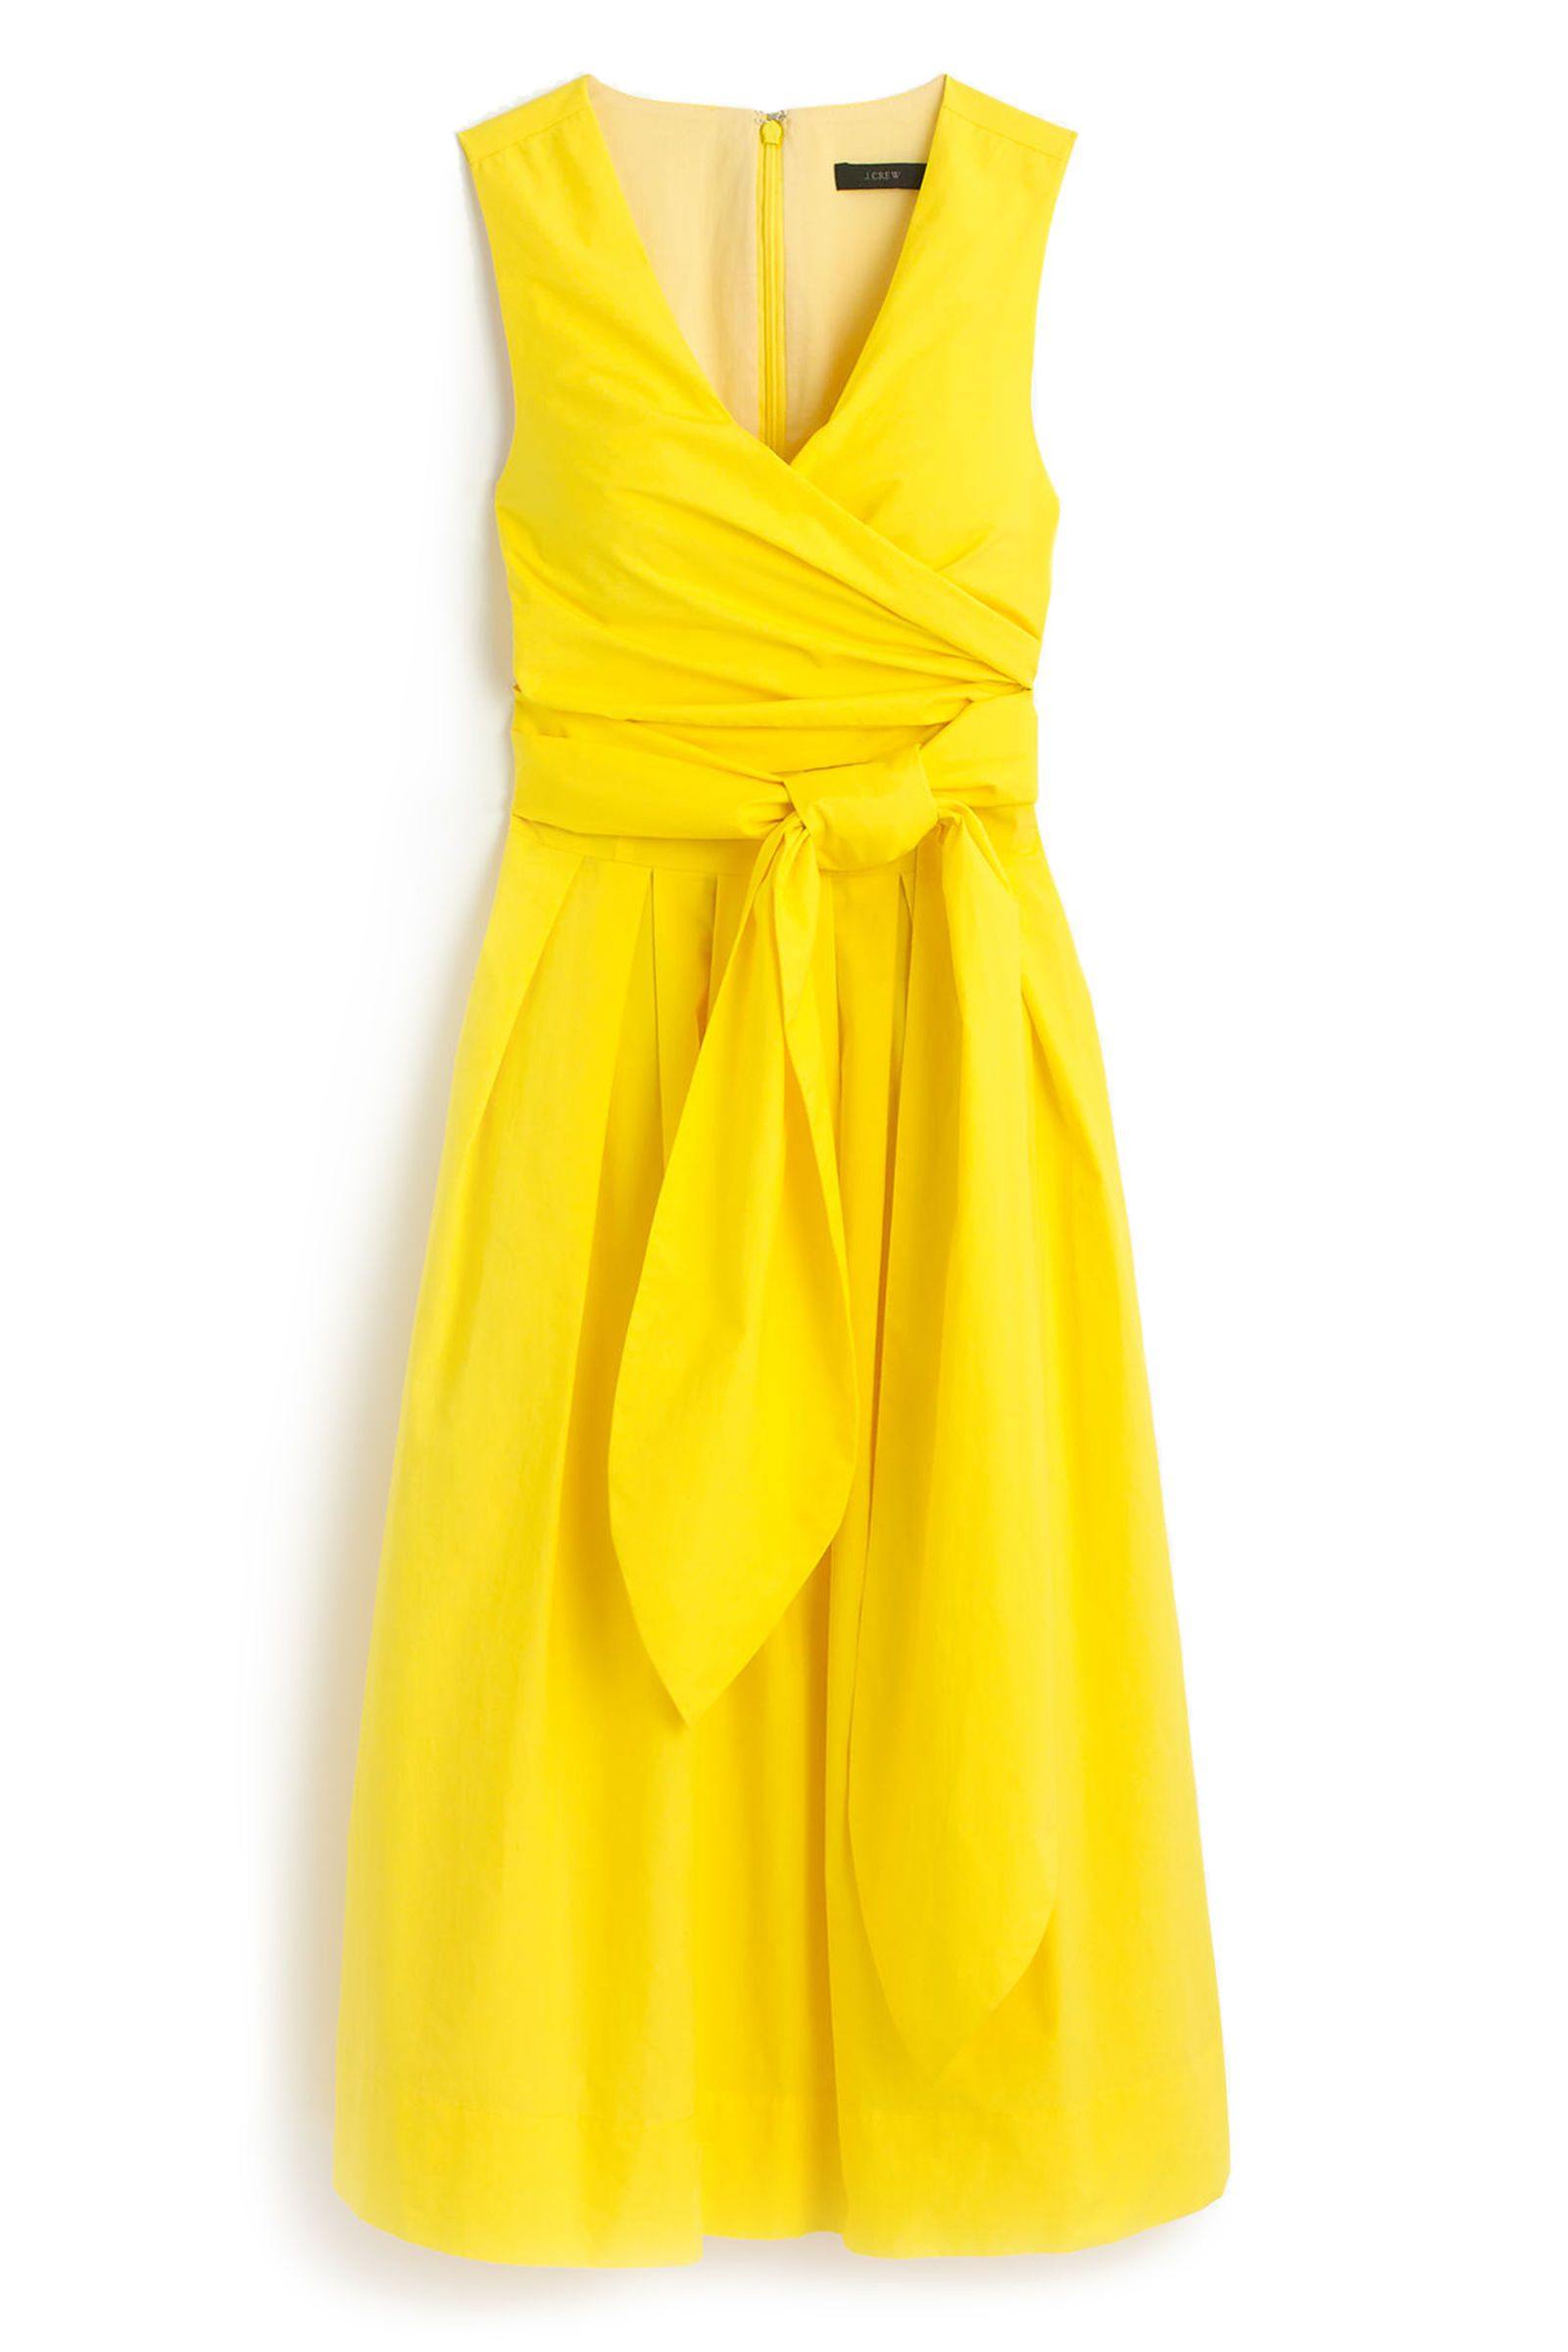 A sunny hue for when you're feeling extra, well, sunny | J. Crew Wrap Dress